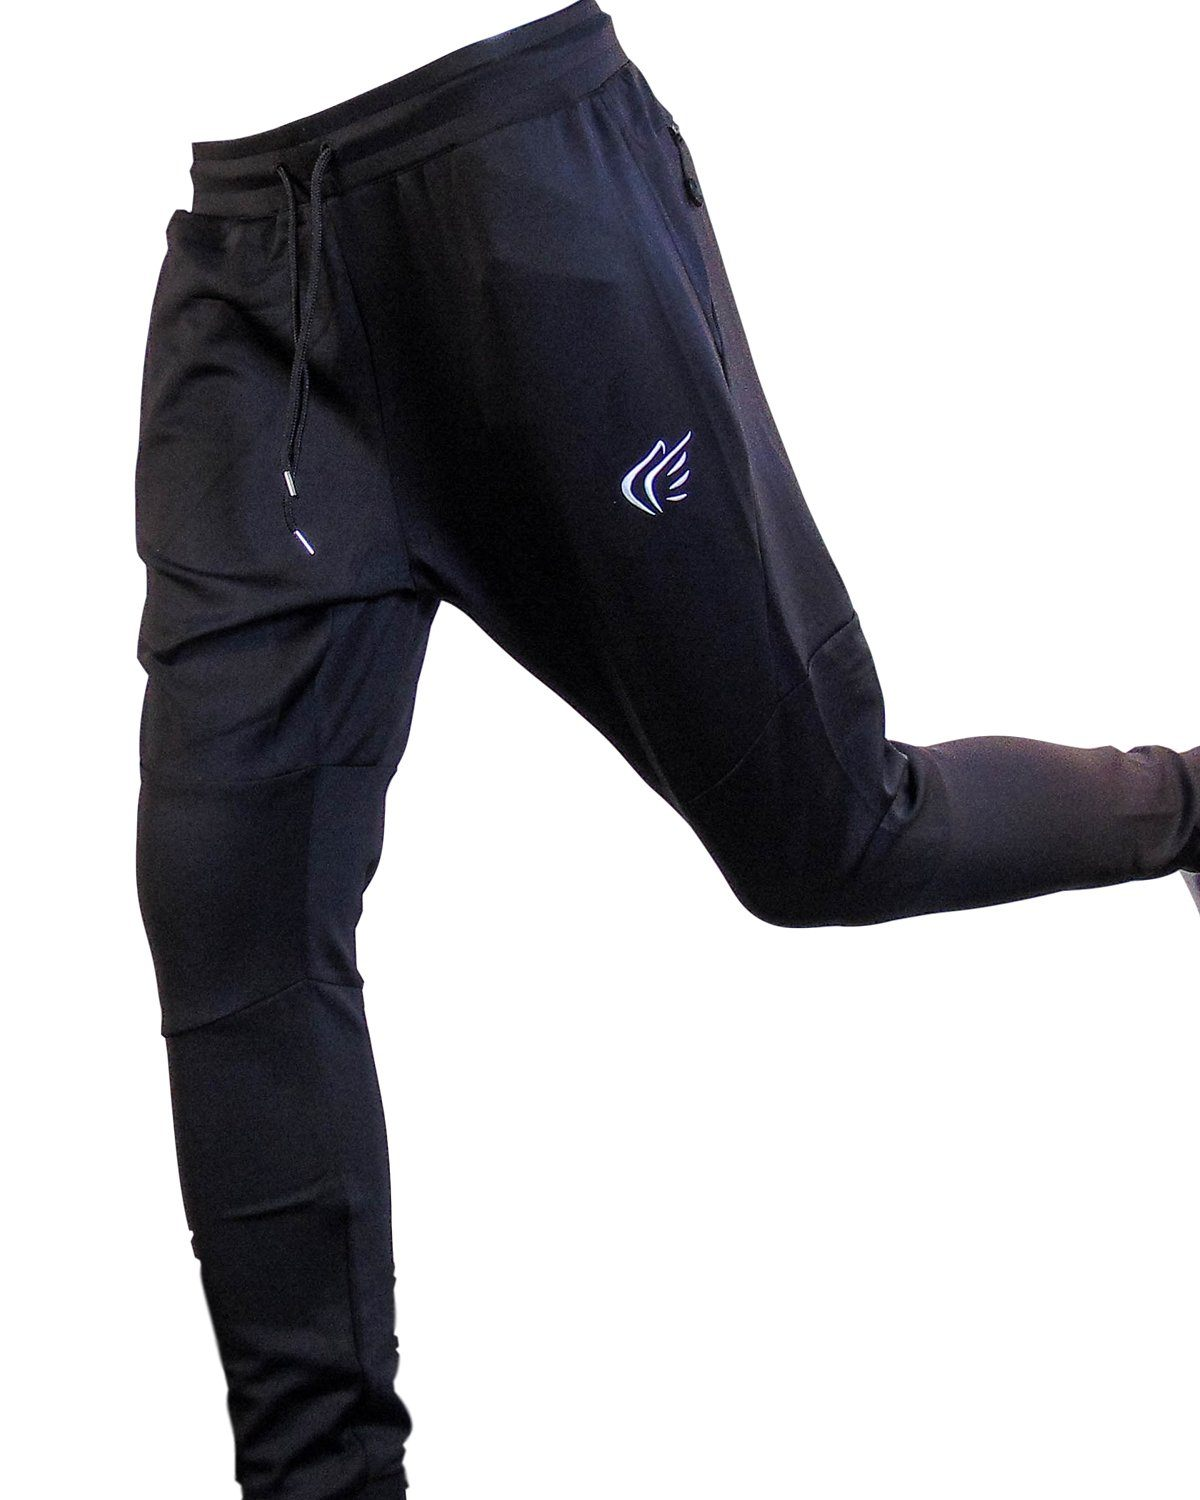 Mens Active Faith PERFORMANCE JOGGERS in Charcoal White Color